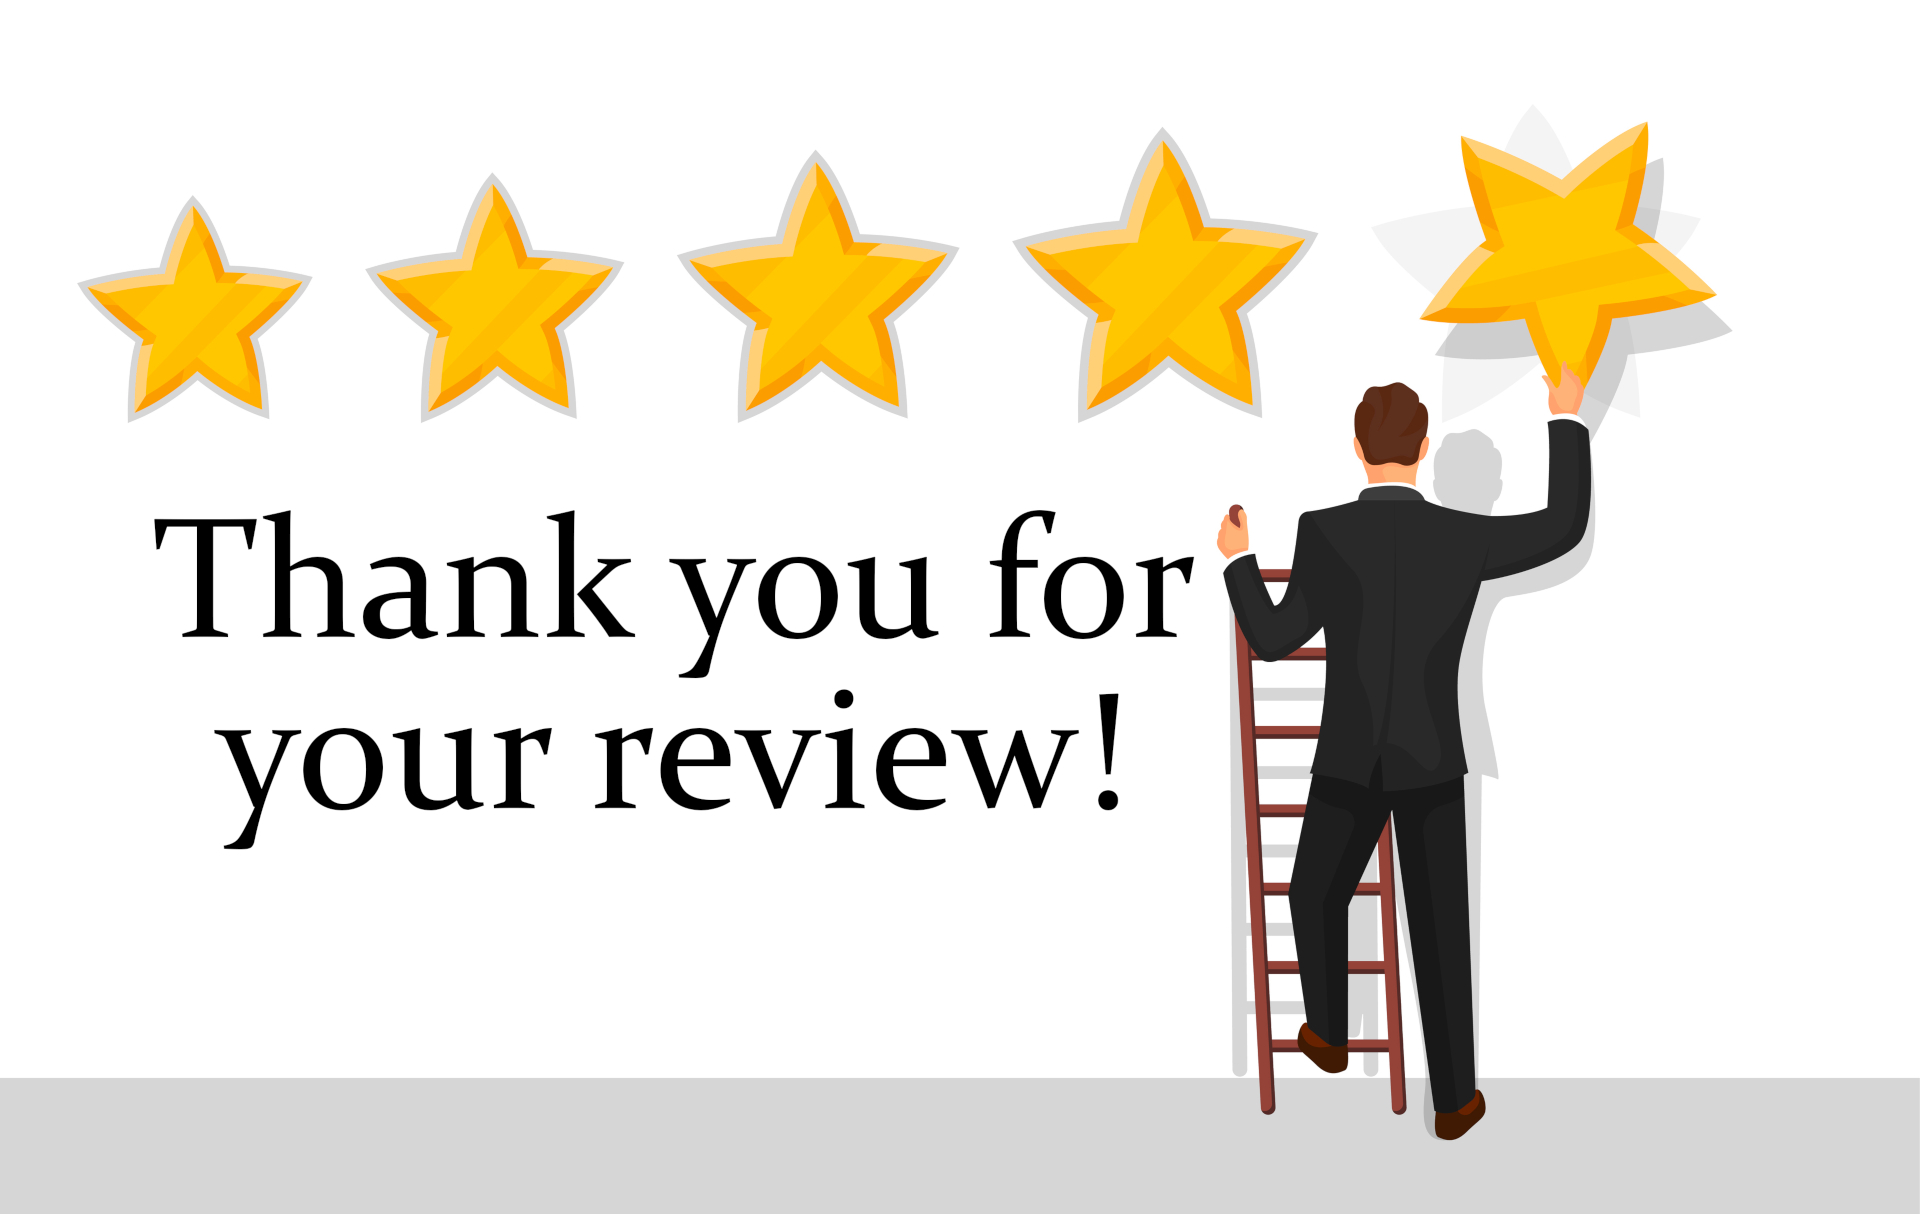 Thank you for your review